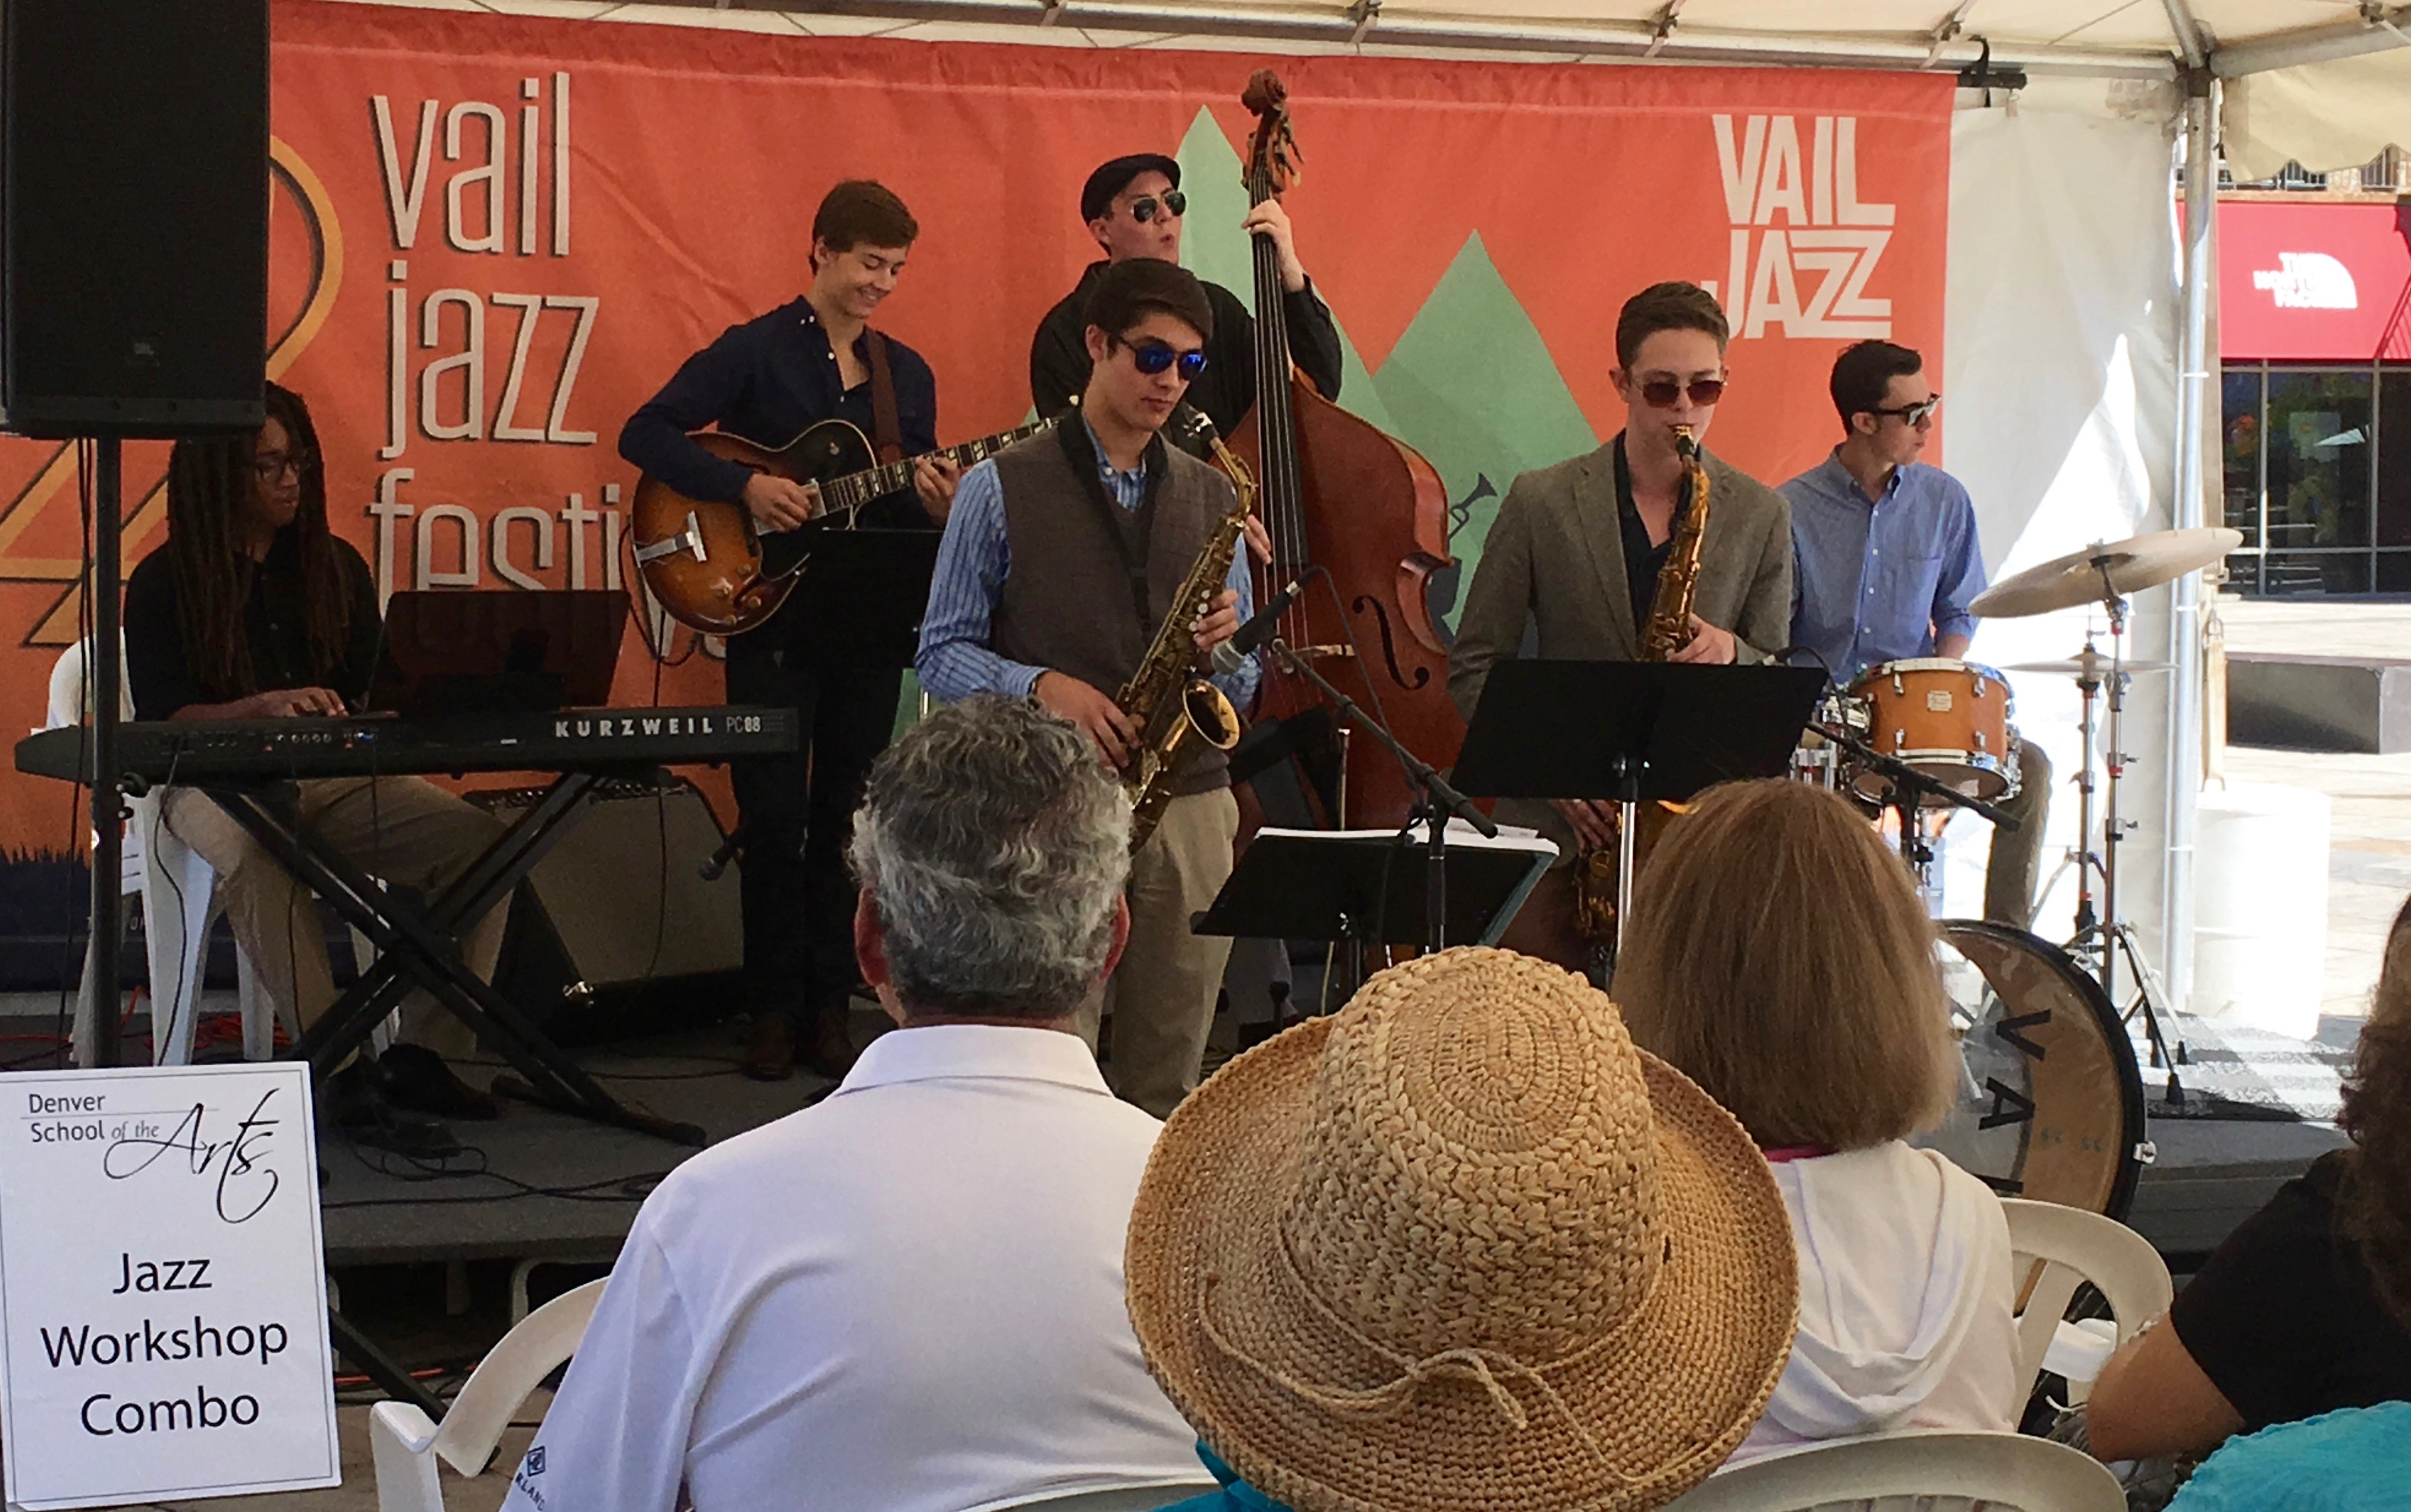 DSA JWO jazz Combo plays the Vail Jazz Festival.